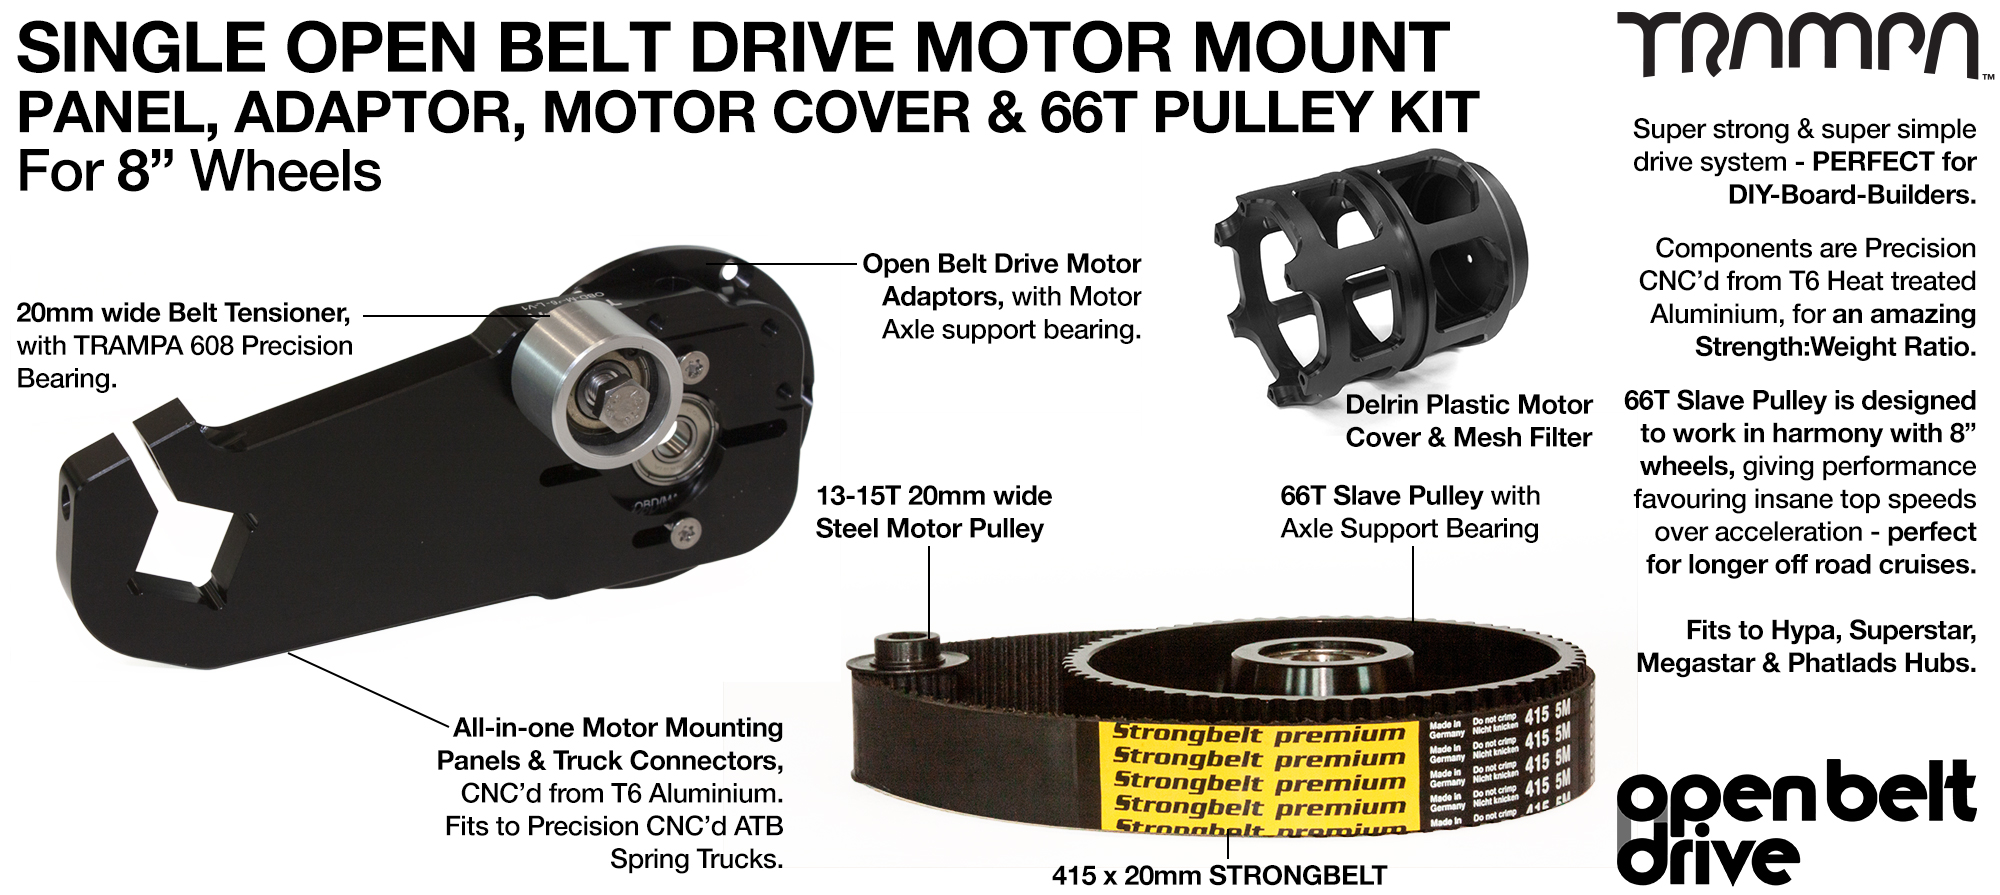 66T Open Belt Drive OBD Motor Mount with 66 tooth Pulley Kit for 8 inch Wheels & Motor Protection - SINGLE